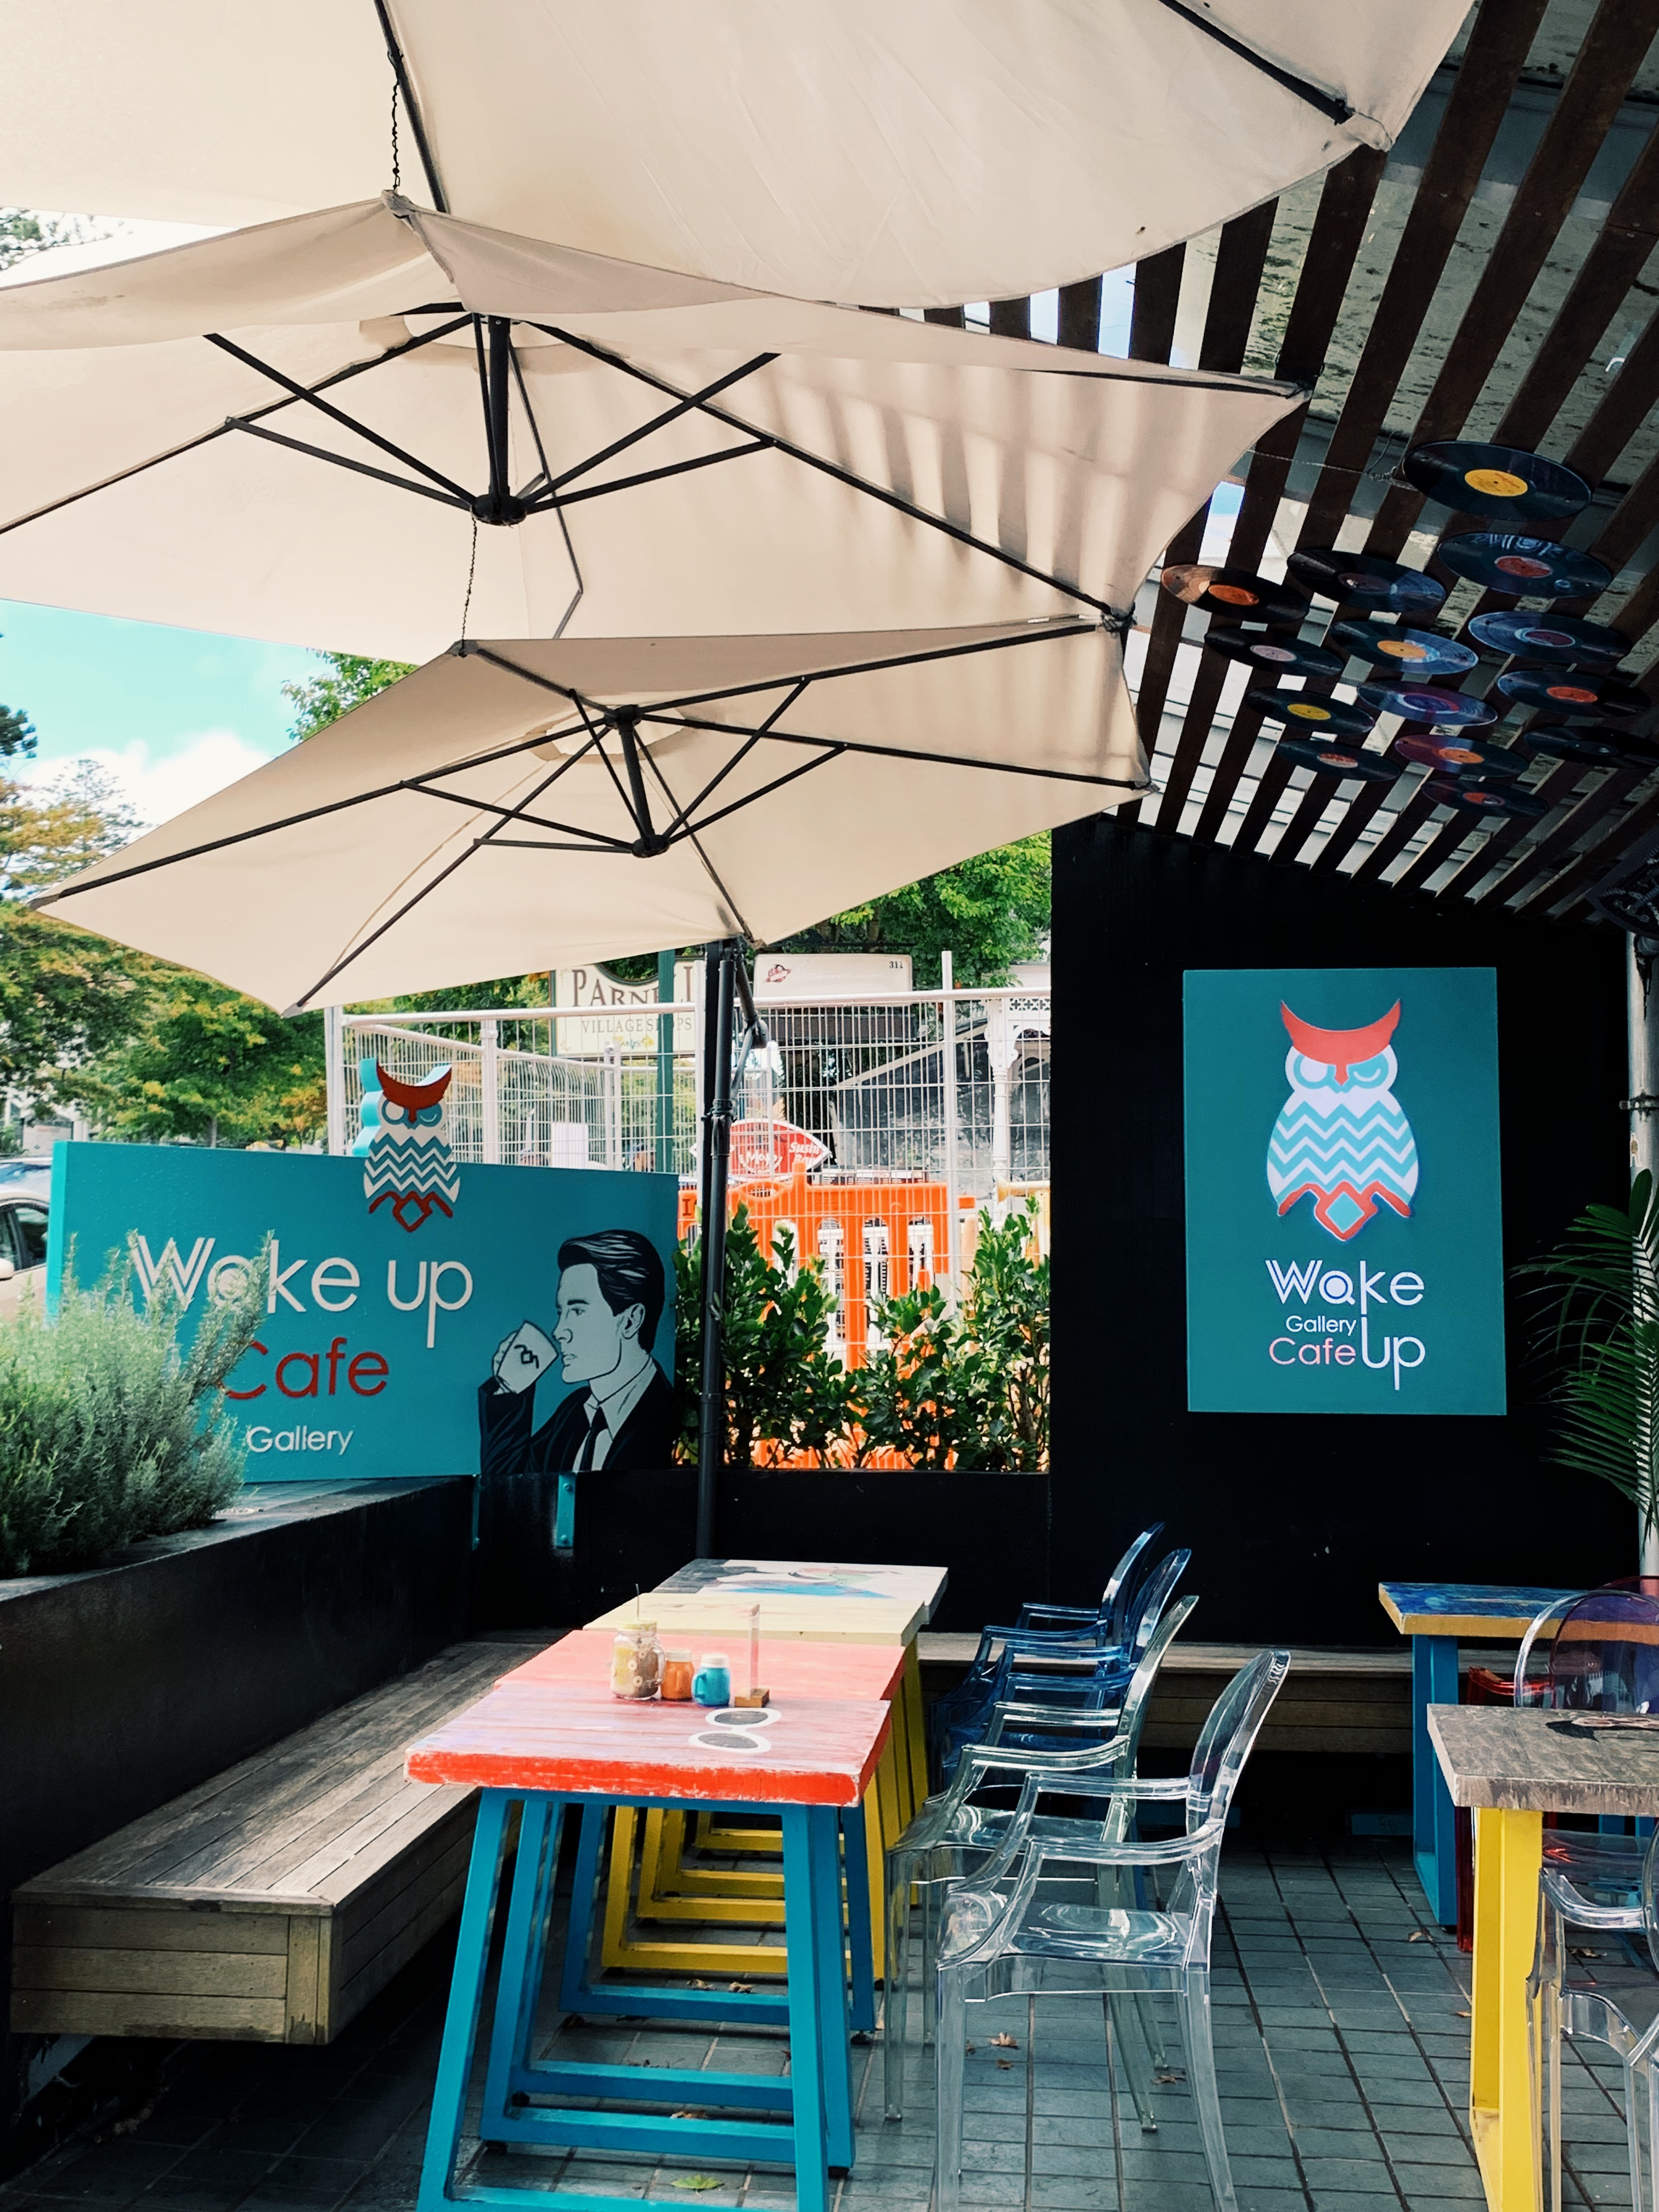 Wake_up_cafe_parnell_auckland_nz_5